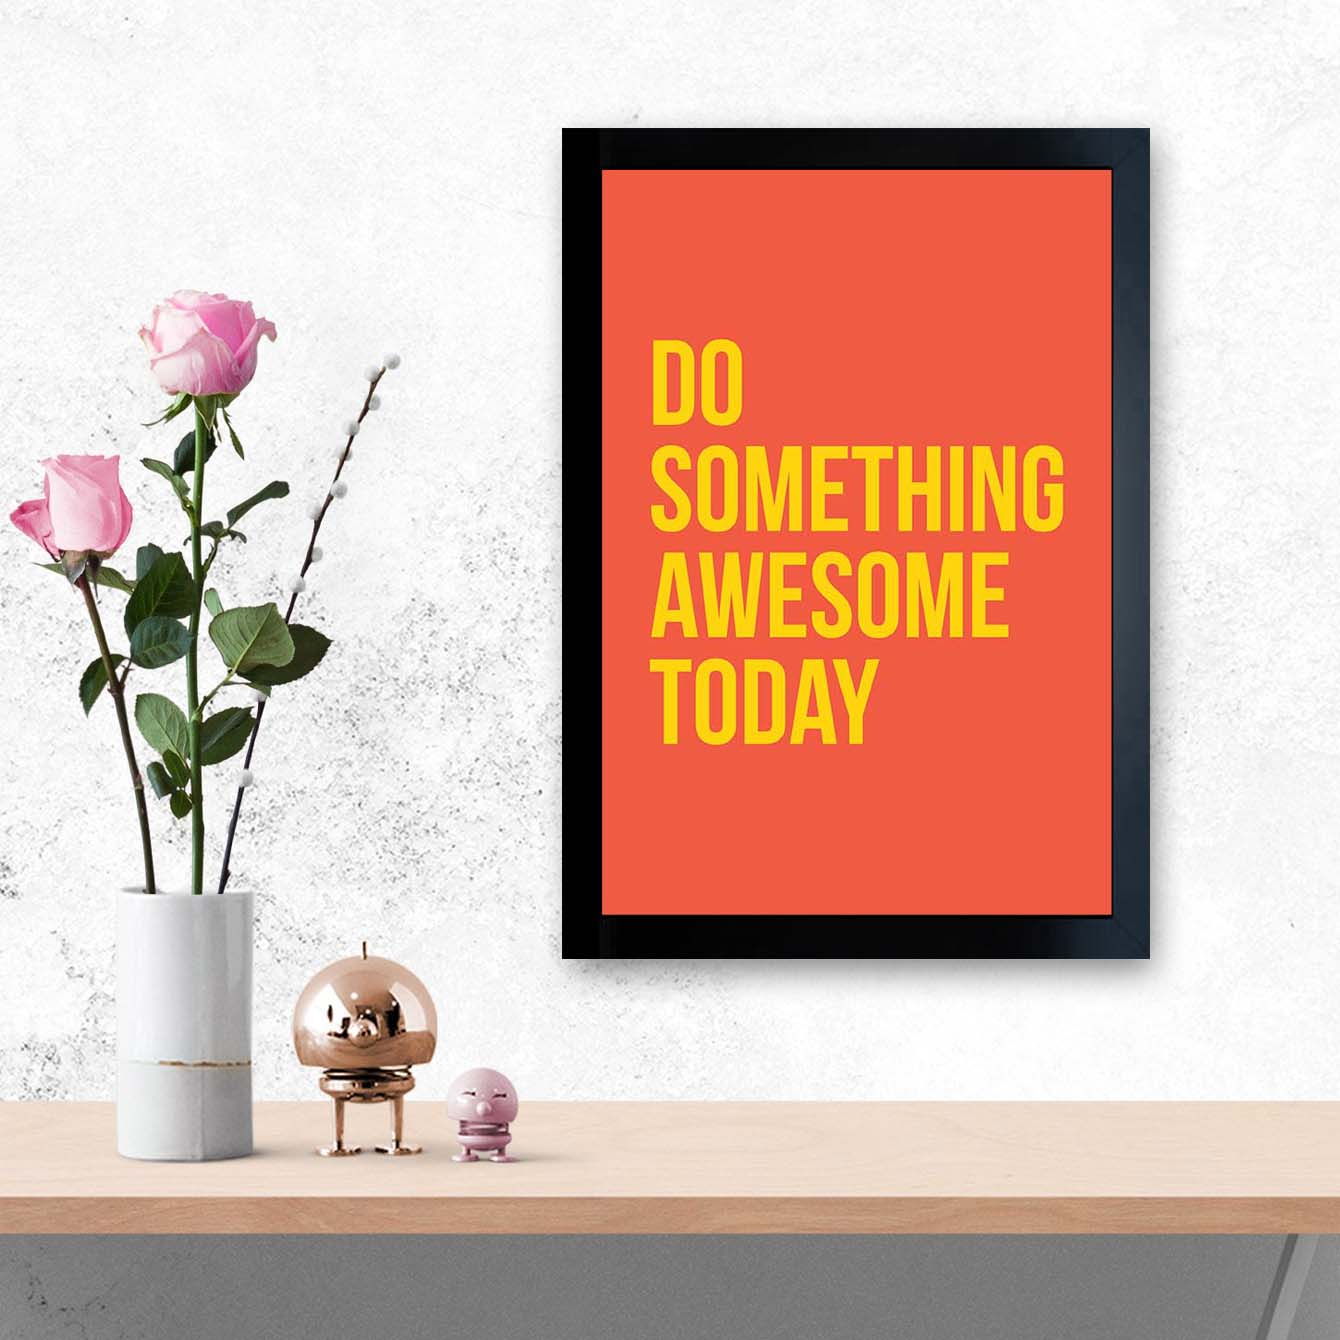 Do Something Awesome Framed Poster